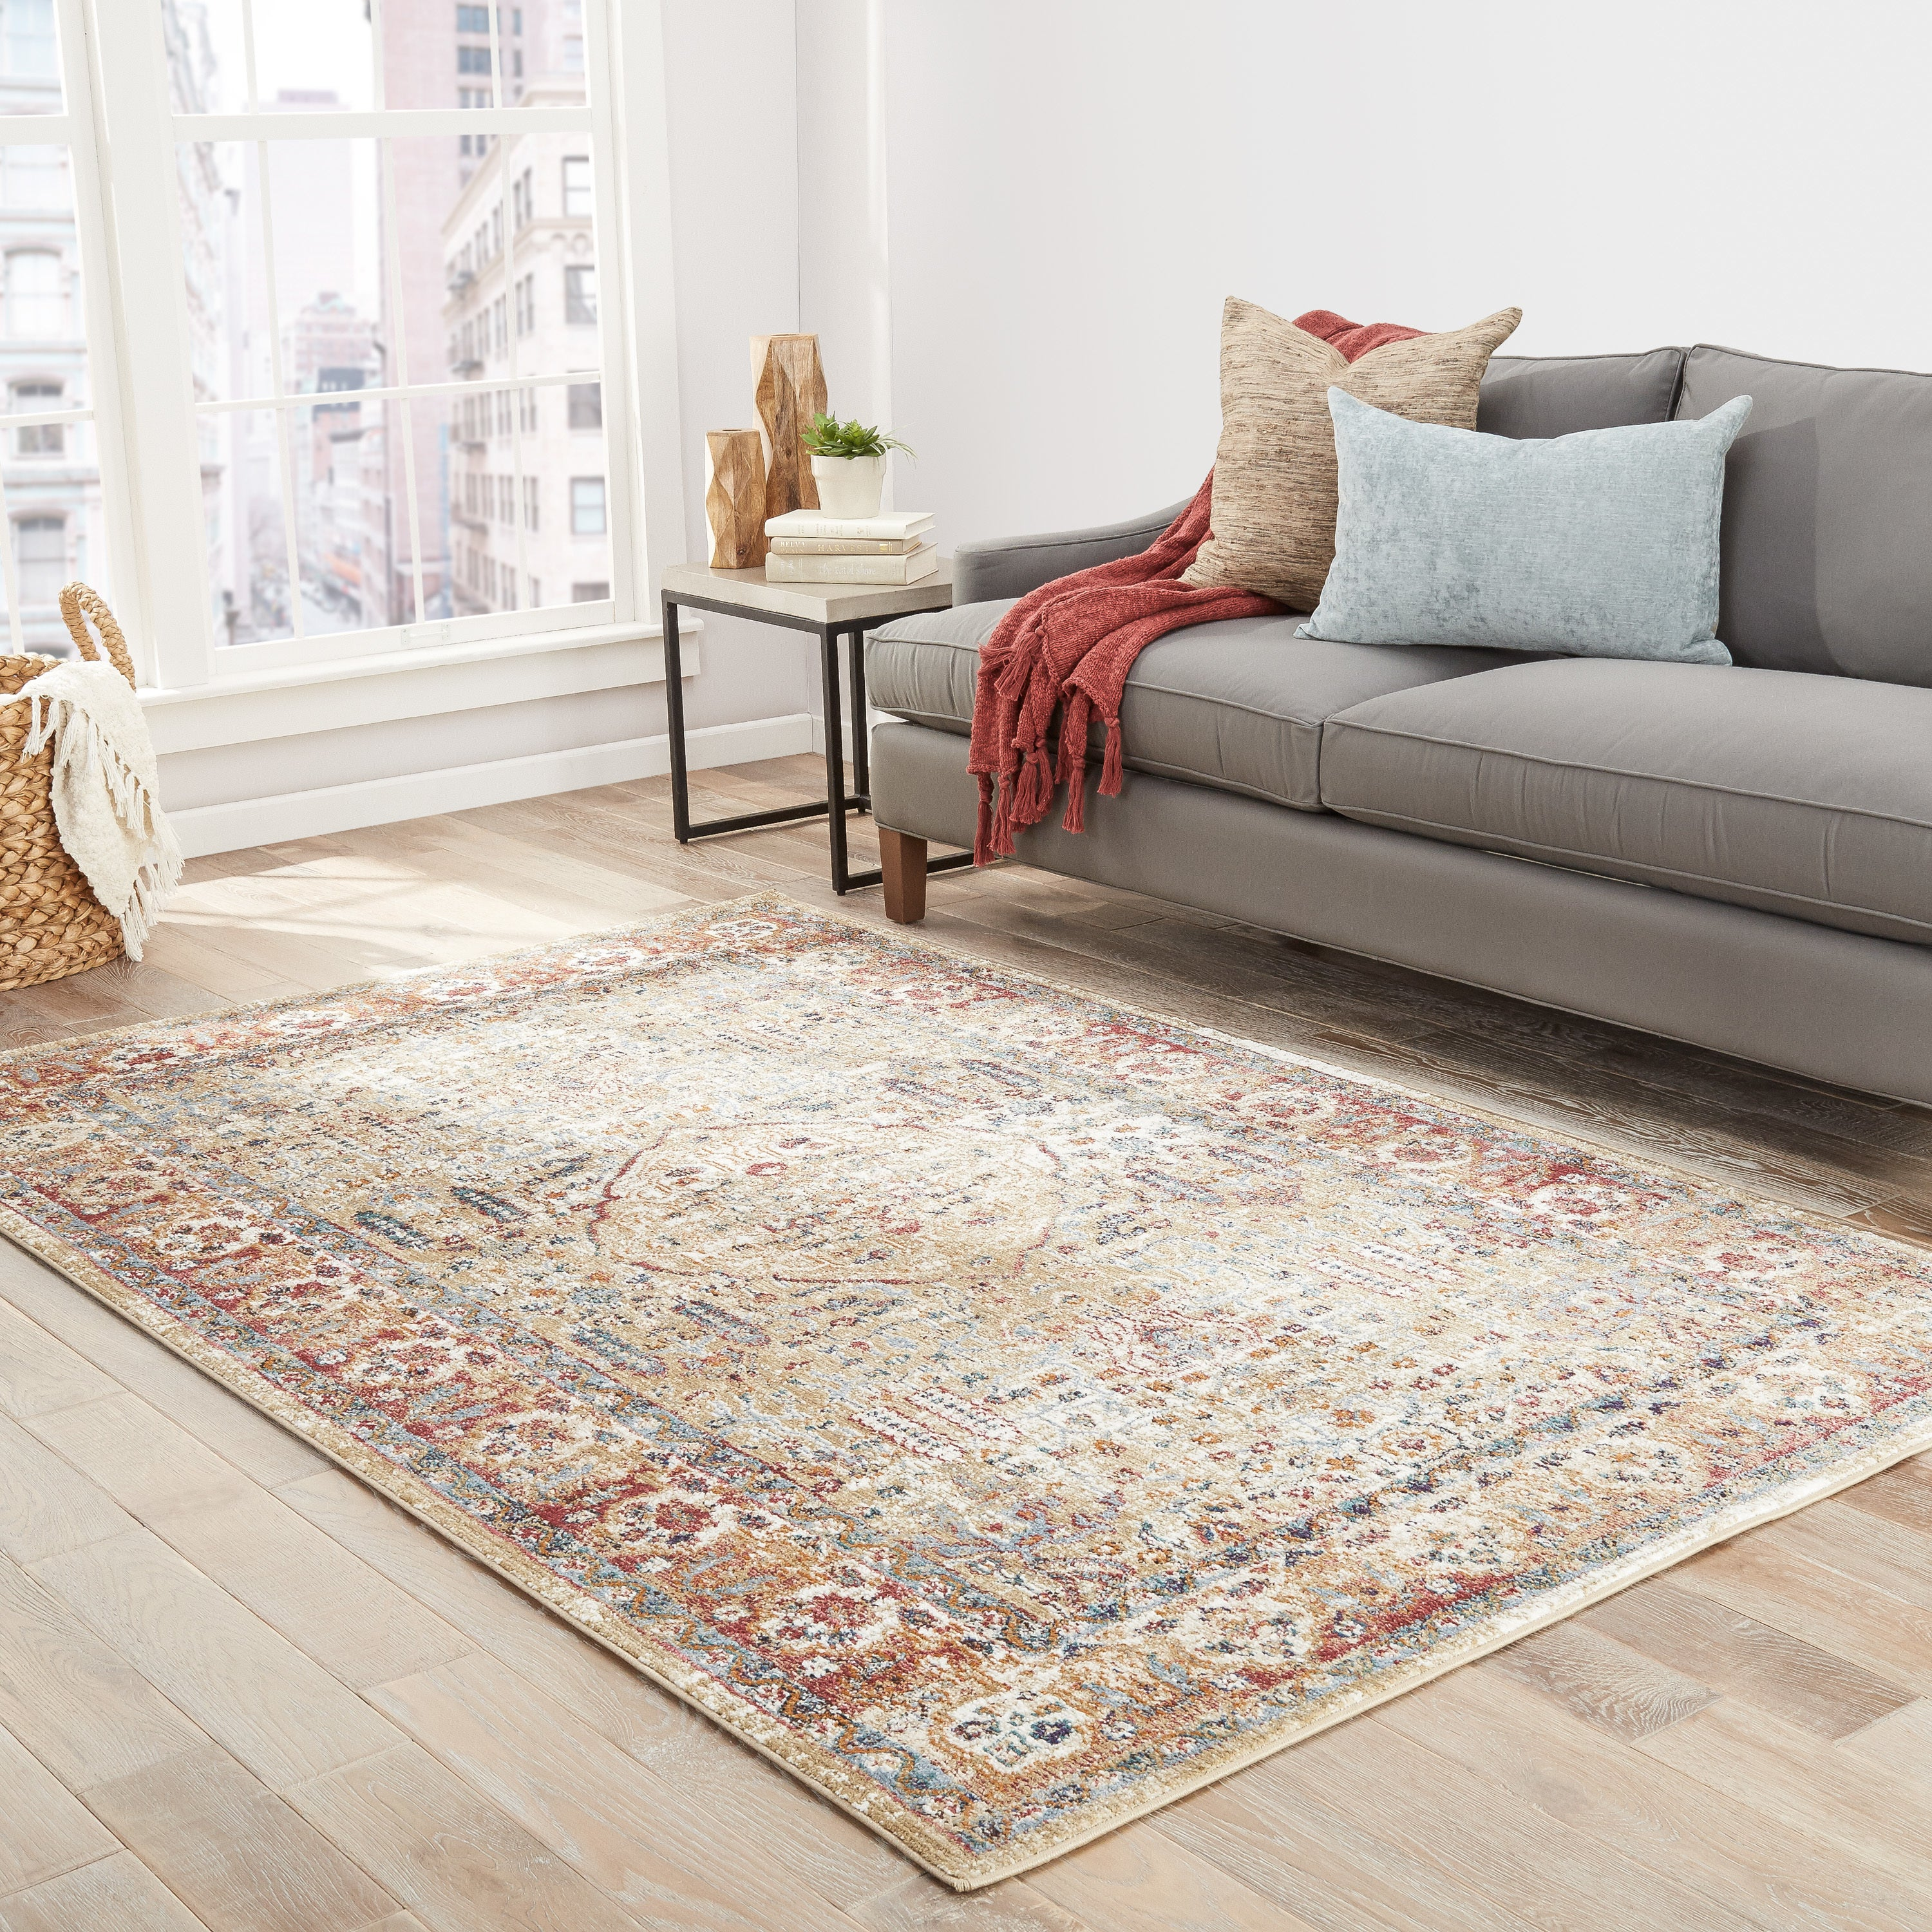 Maison Rouge Andersen Floral Taupe/ Mauve Area Rug - 5\' x 8\' - Free ...